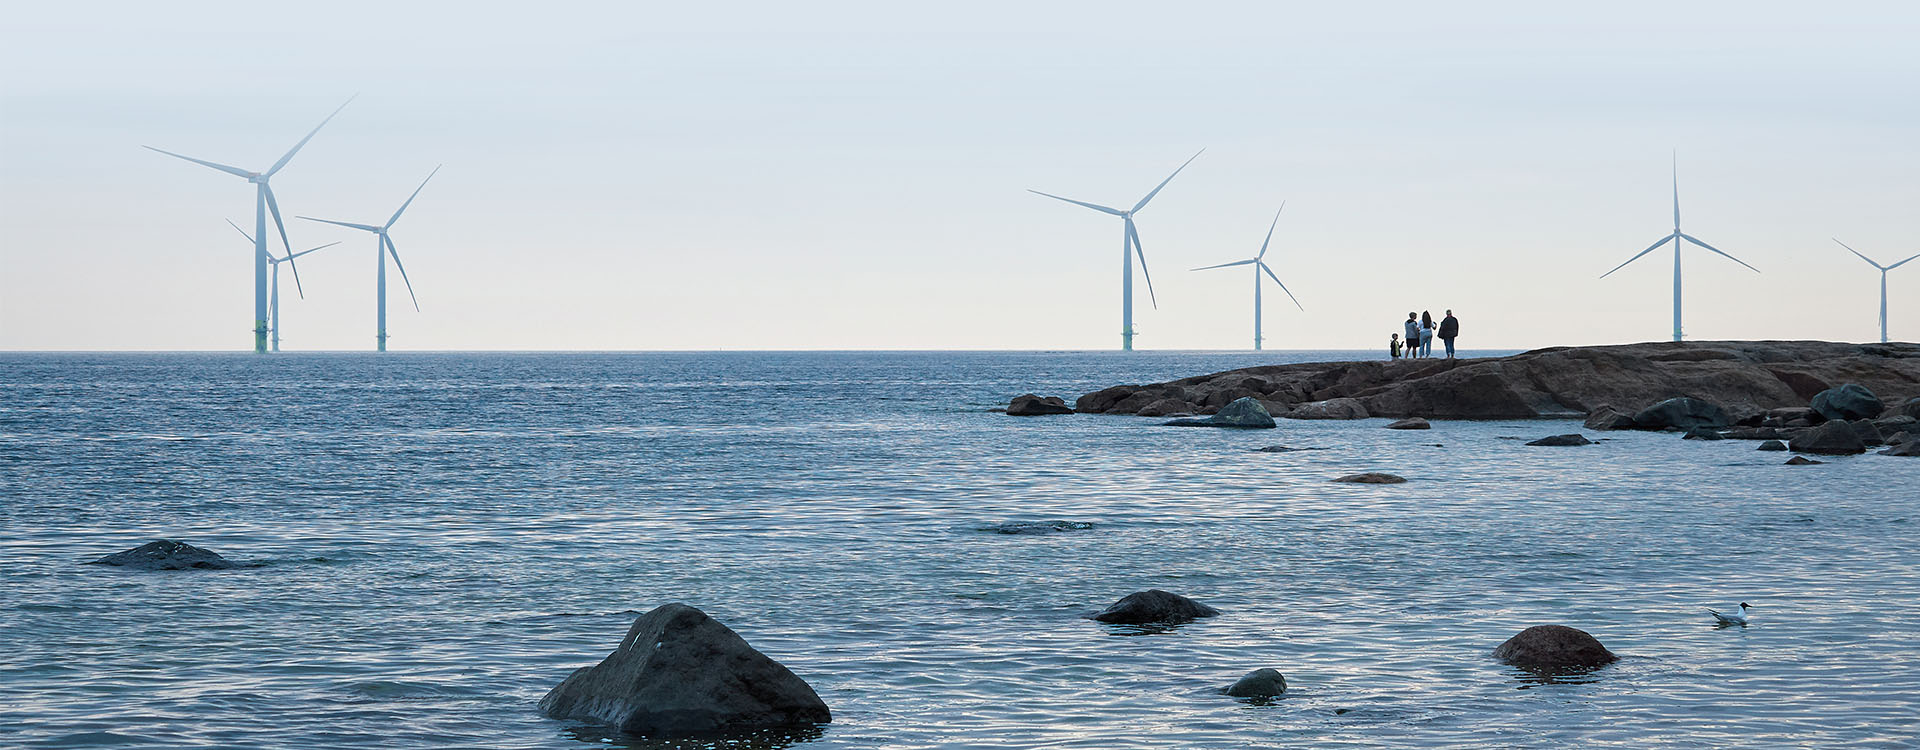 bnr-offshore-wind-farm